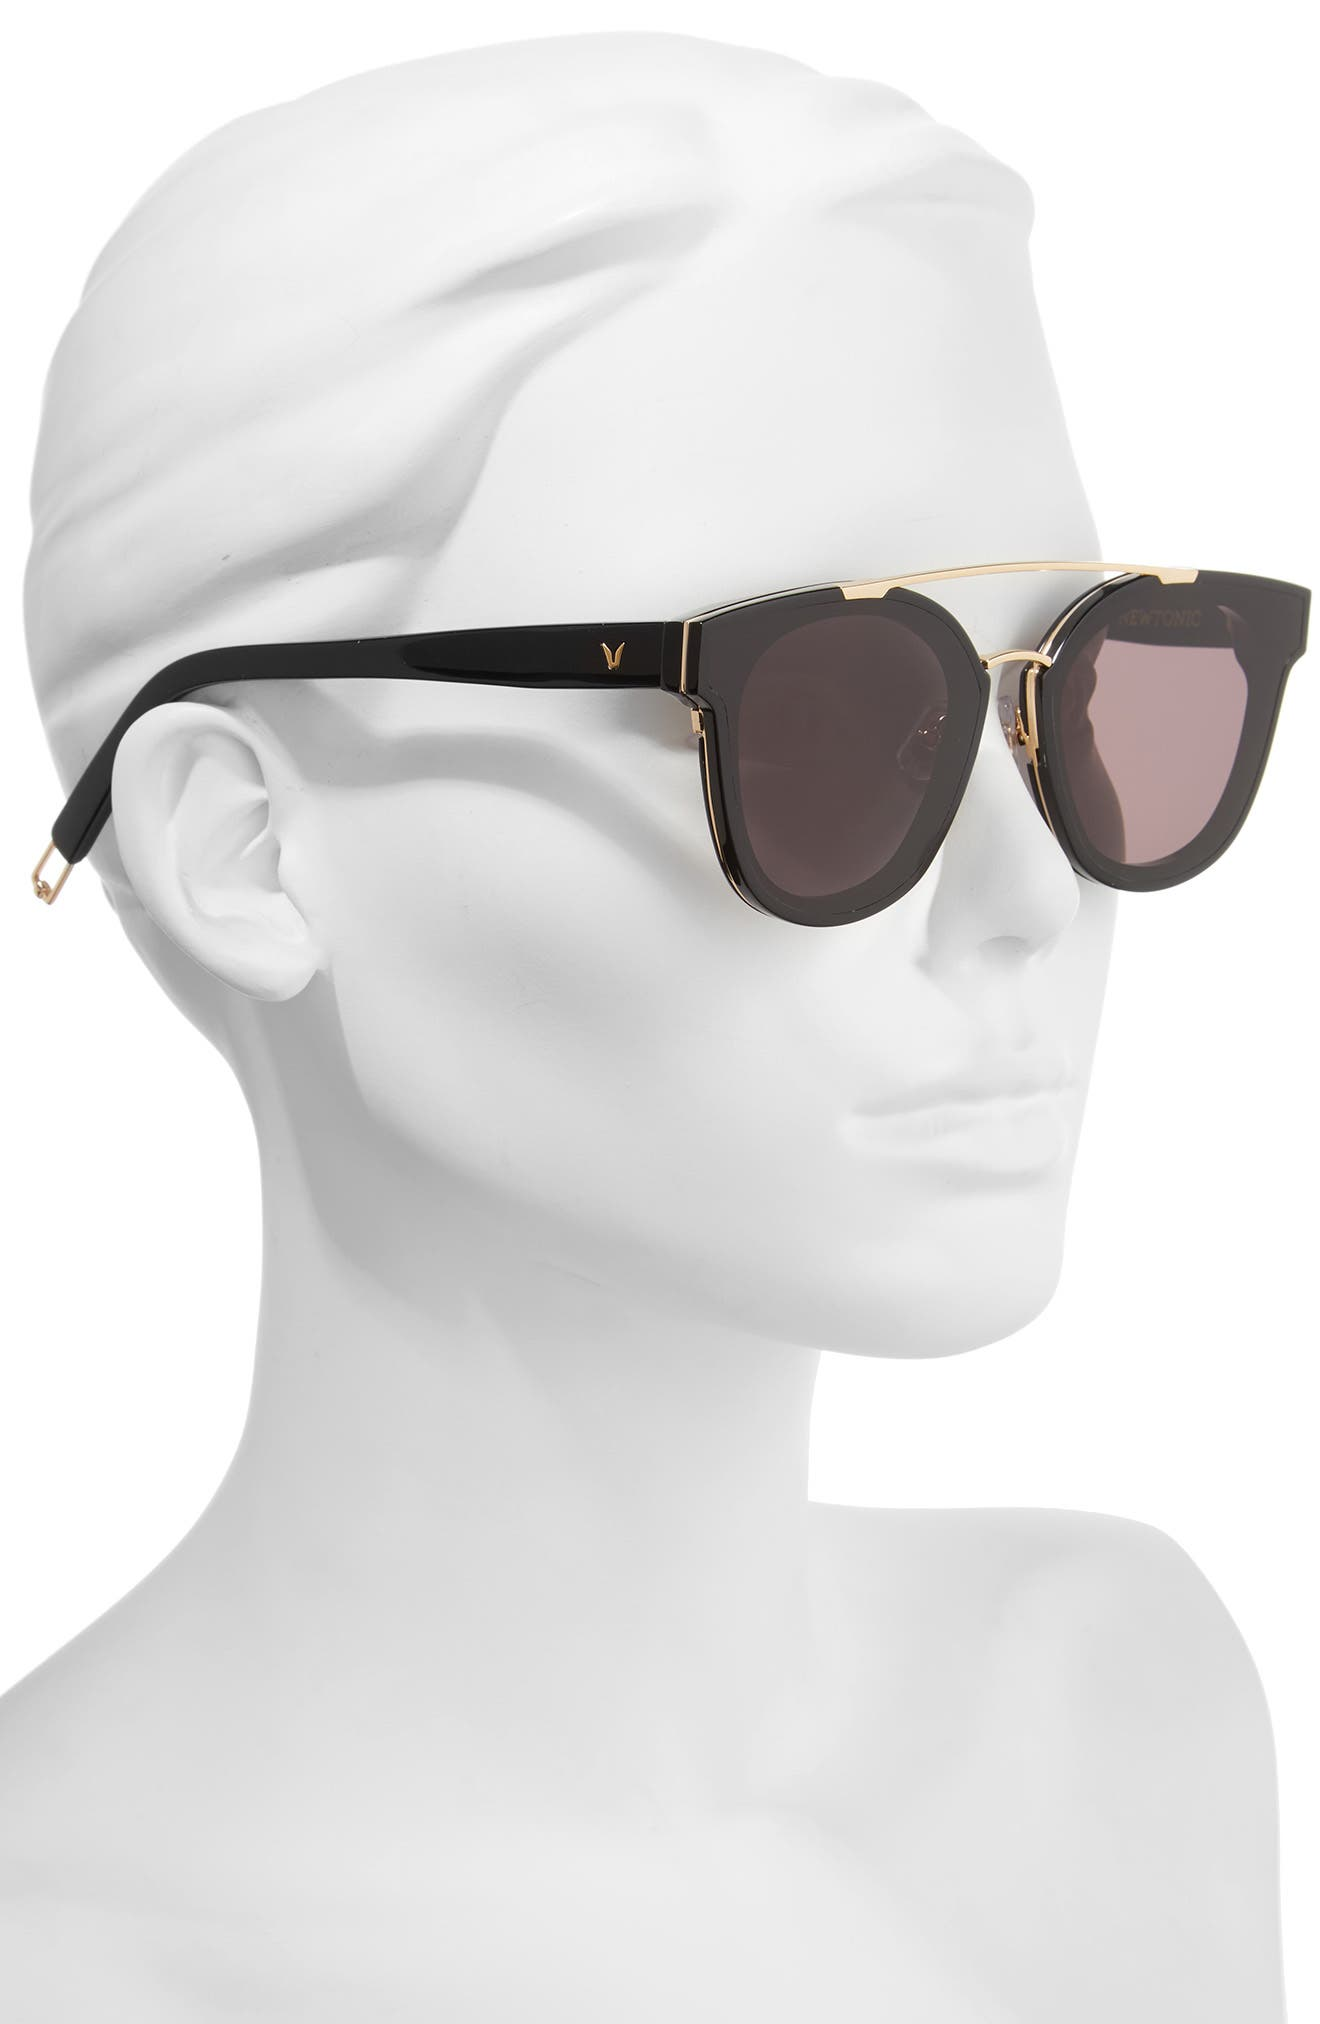 Tilda Swinton x Gentle Monster Newtonic 60mm Rounded Sunglasses,                             Alternate thumbnail 2, color,                             Black